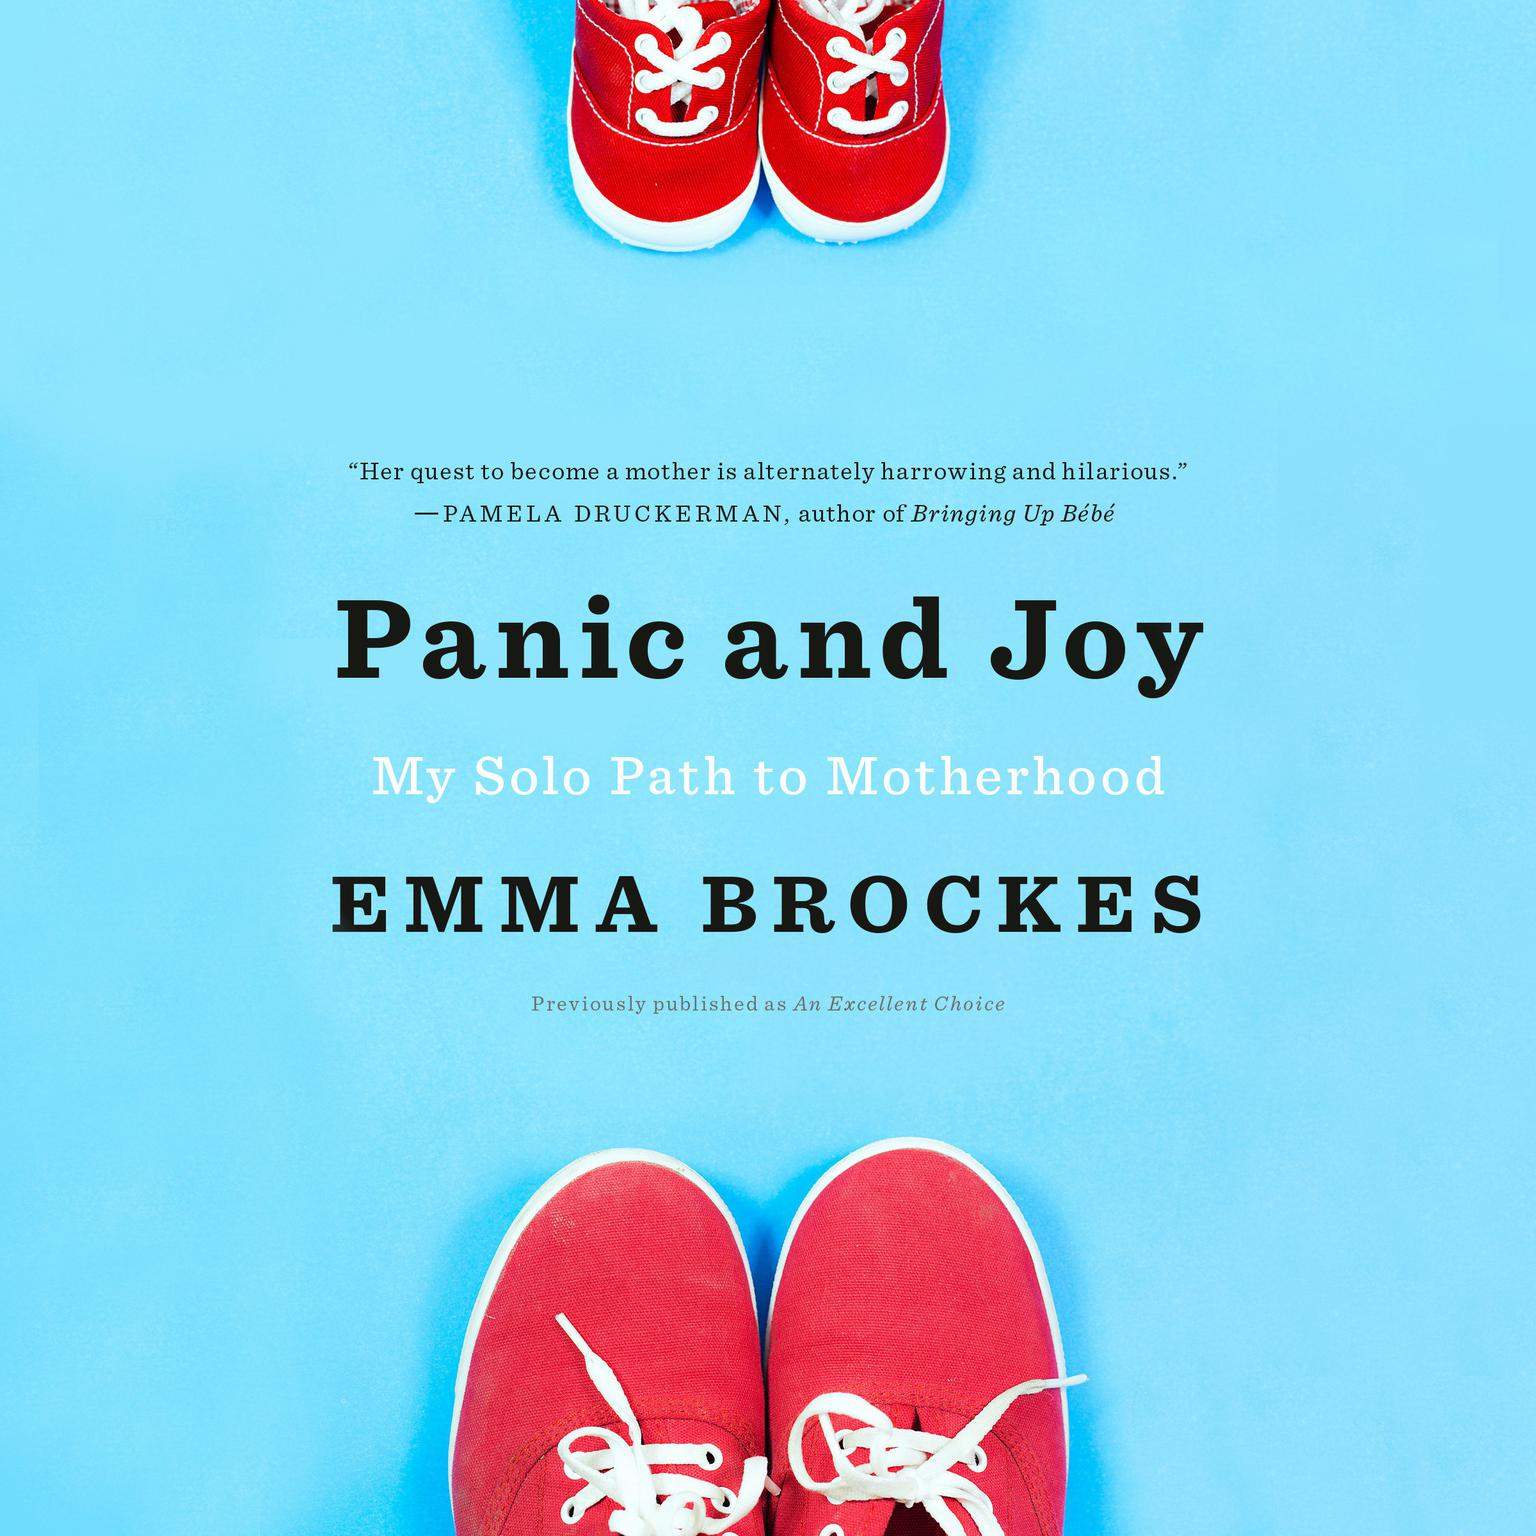 Printable An Excellent Choice: Panic and Joy on My Solo Path to Motherhood Audiobook Cover Art